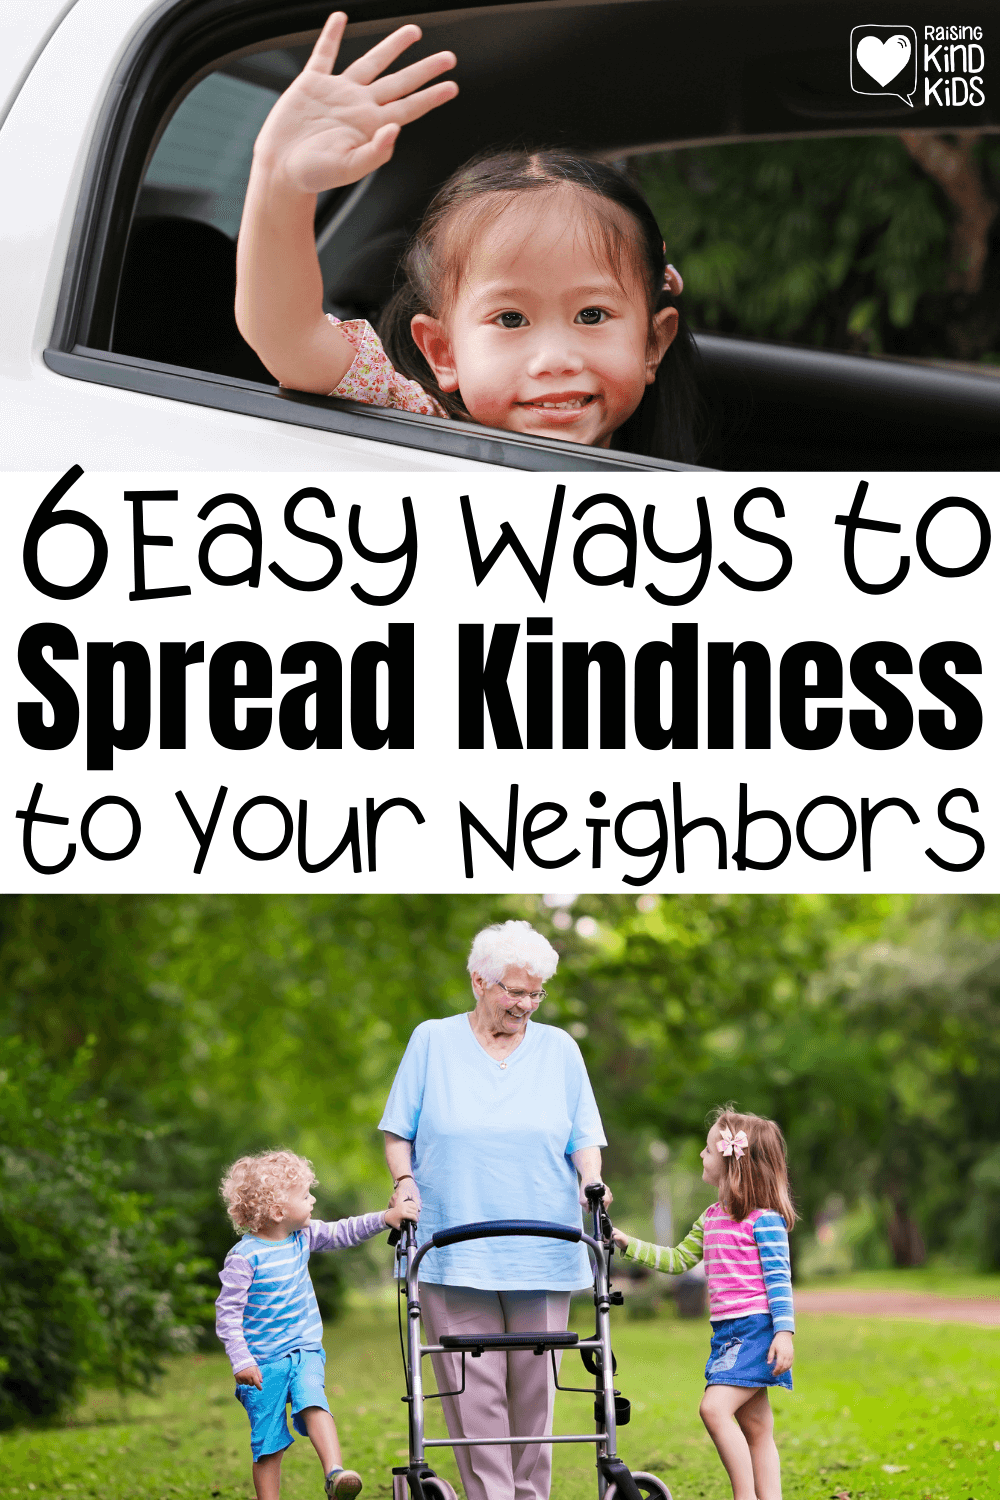 These 6 easy ways to spread kindness to your neighbors will help you connect with your neighbors and make their days a little easier.